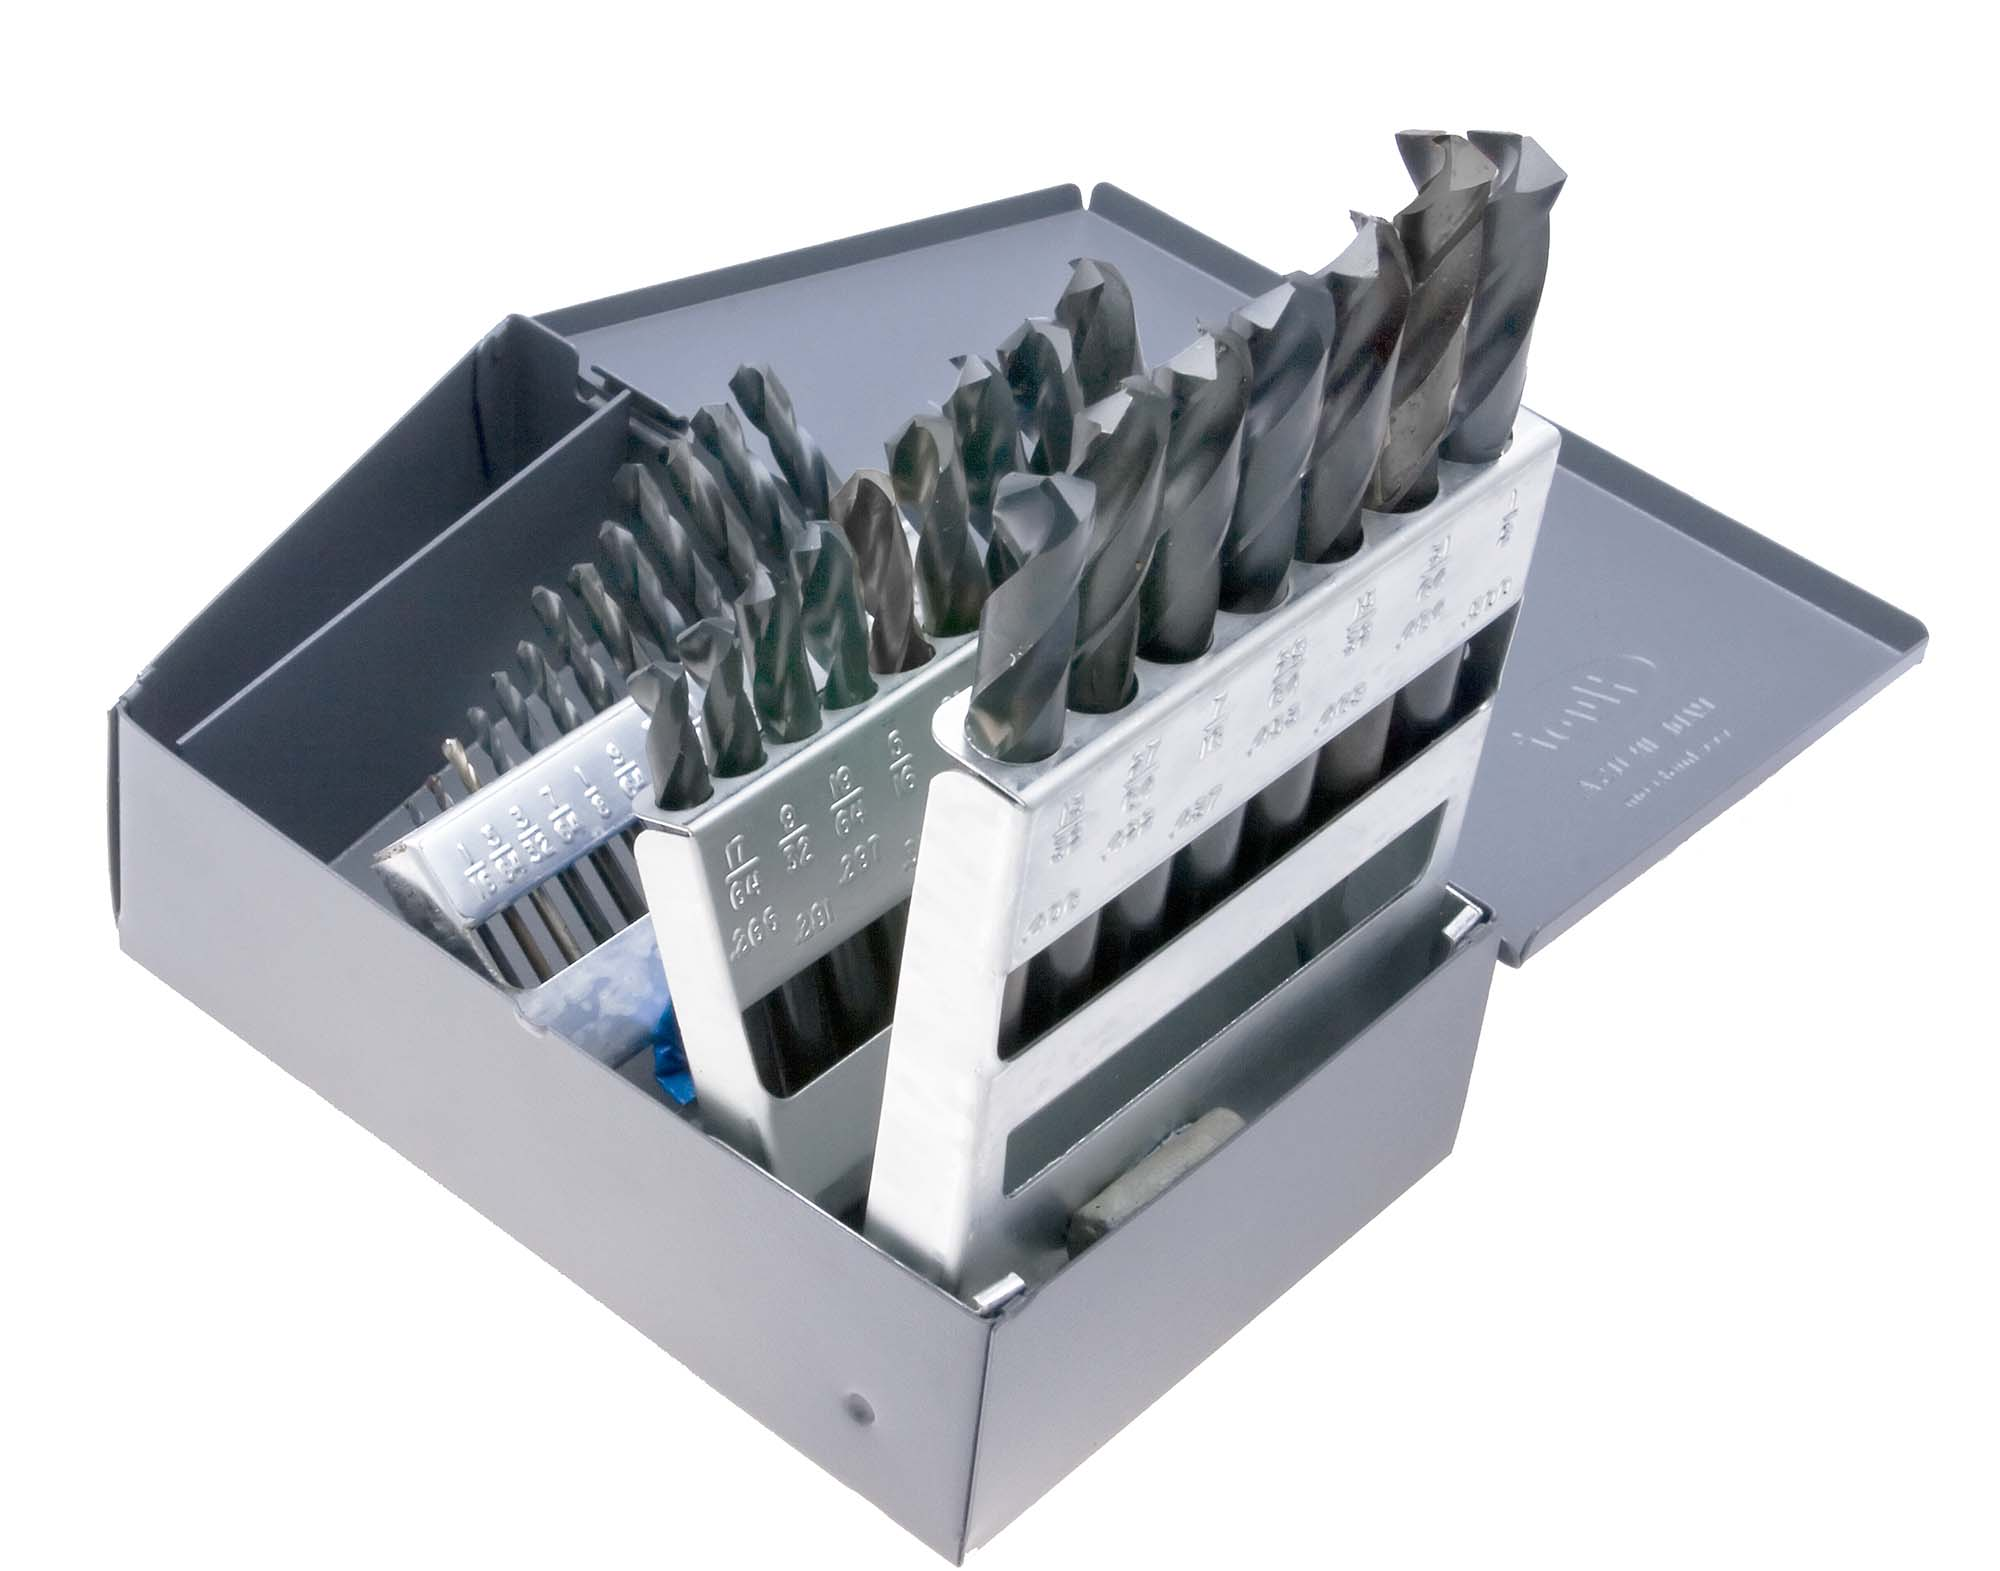 1/16-1/2 by 64th Screw Mach Drill Set